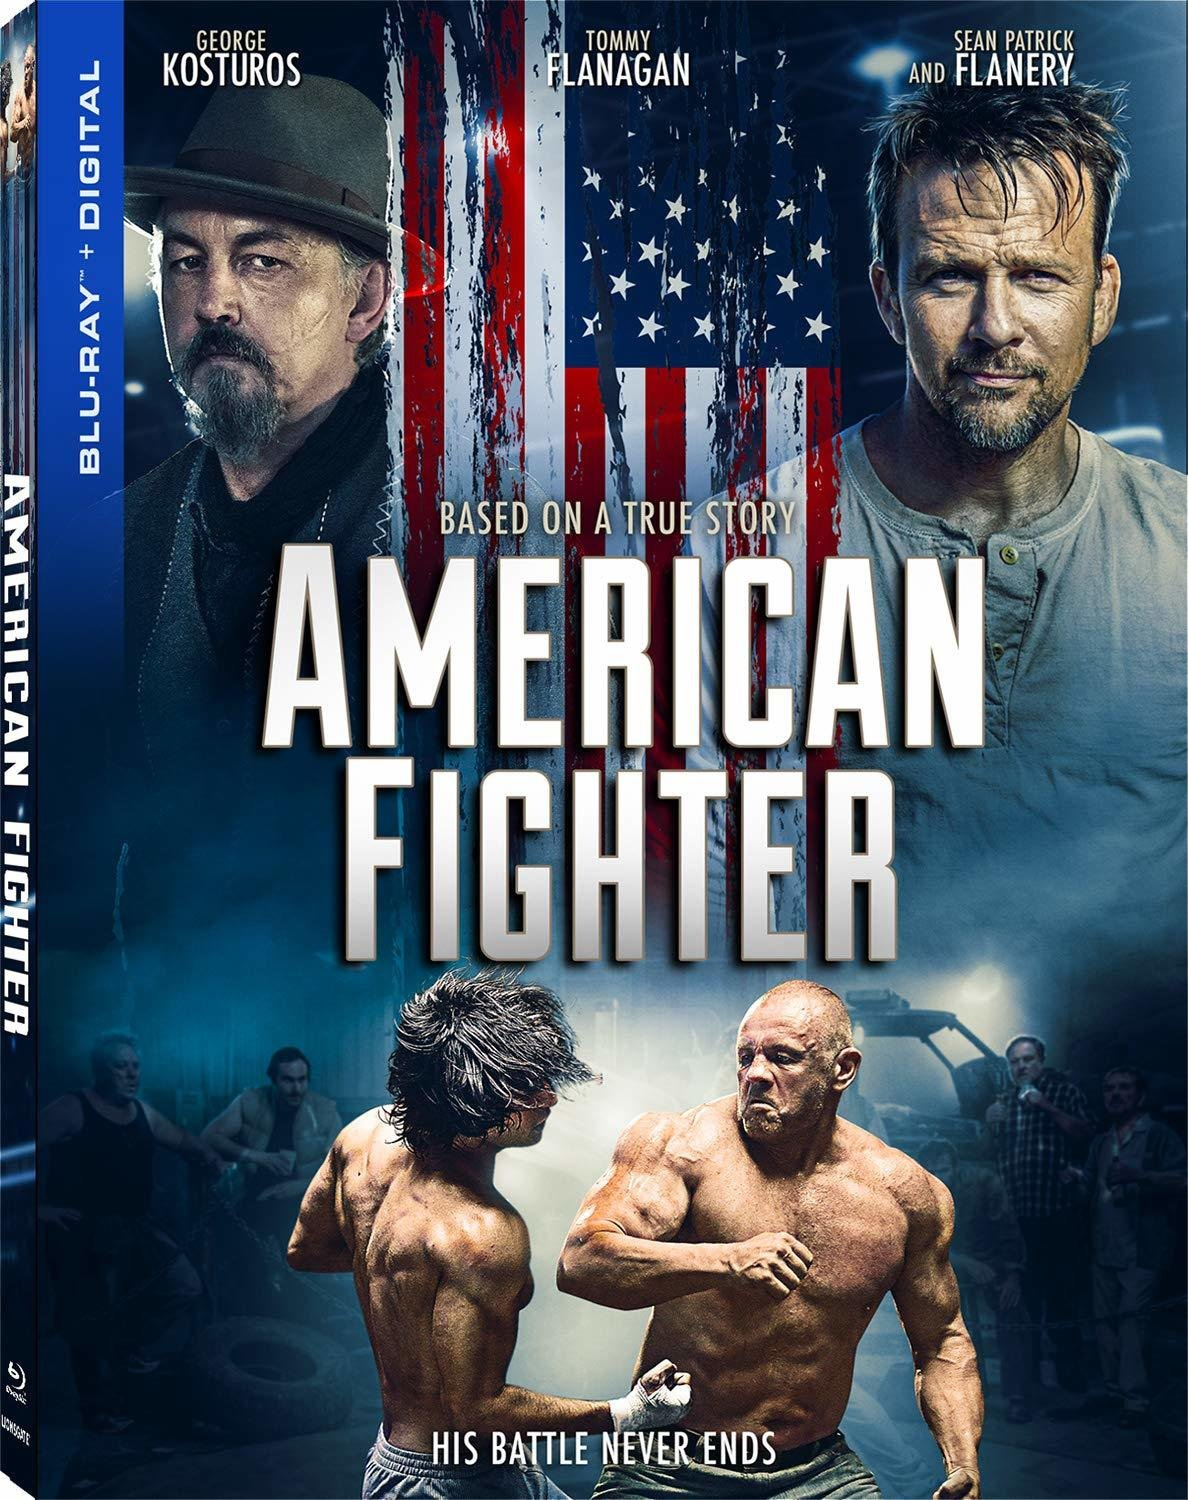 American Fighter poster image